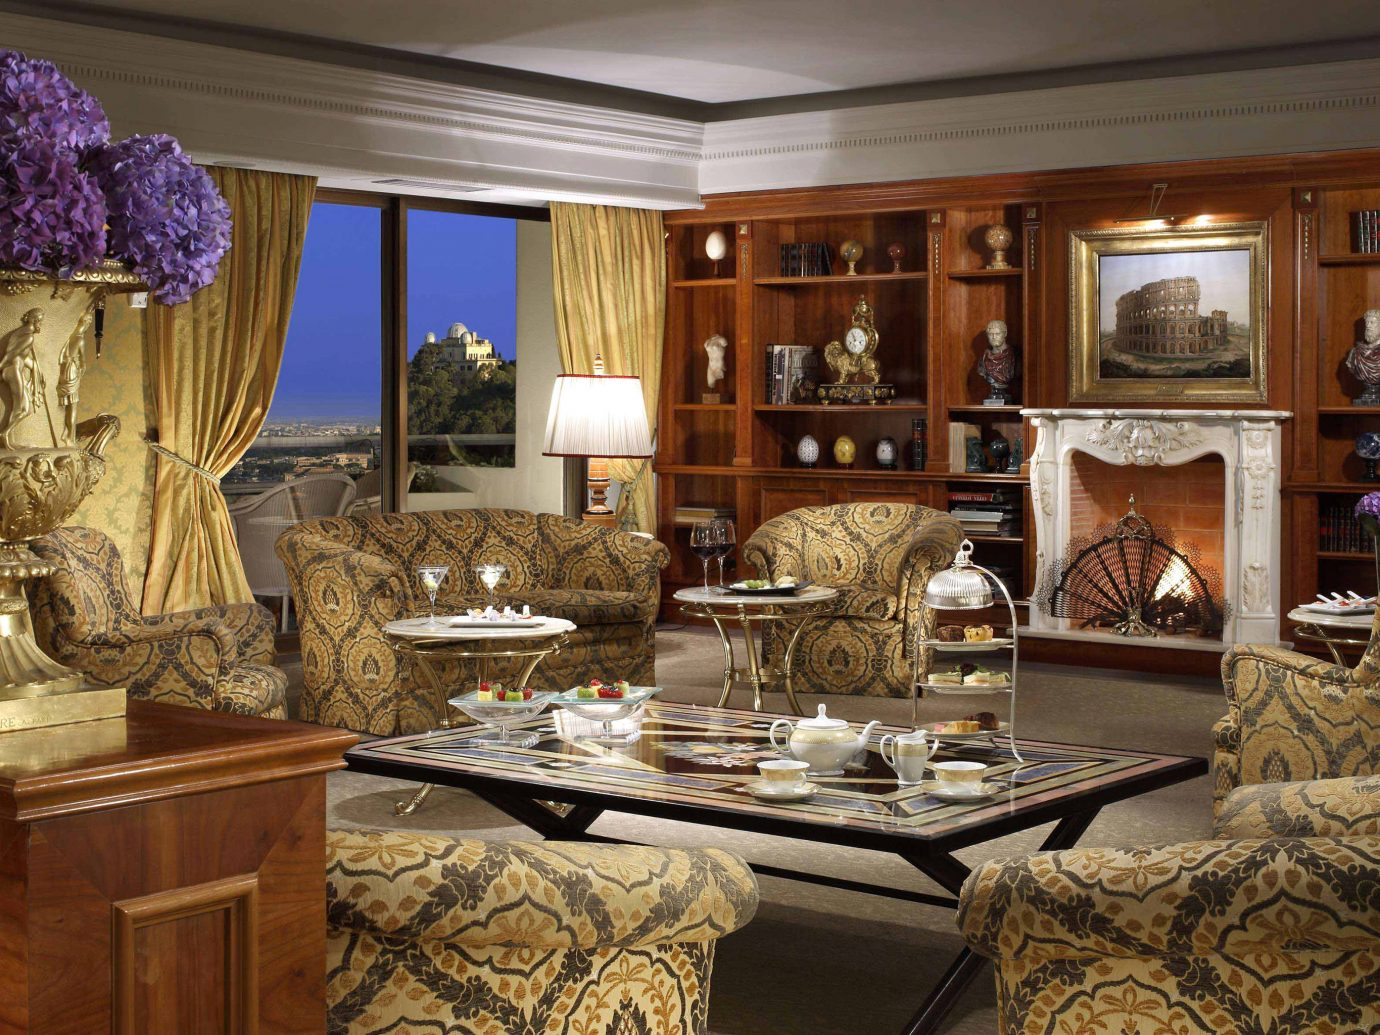 Boutique Hotels City Elegant Italy Living Luxury Luxury Travel Romantic Hotels Rome indoor room property home living room estate dining room cabinetry interior design Kitchen countertop mansion wood furniture